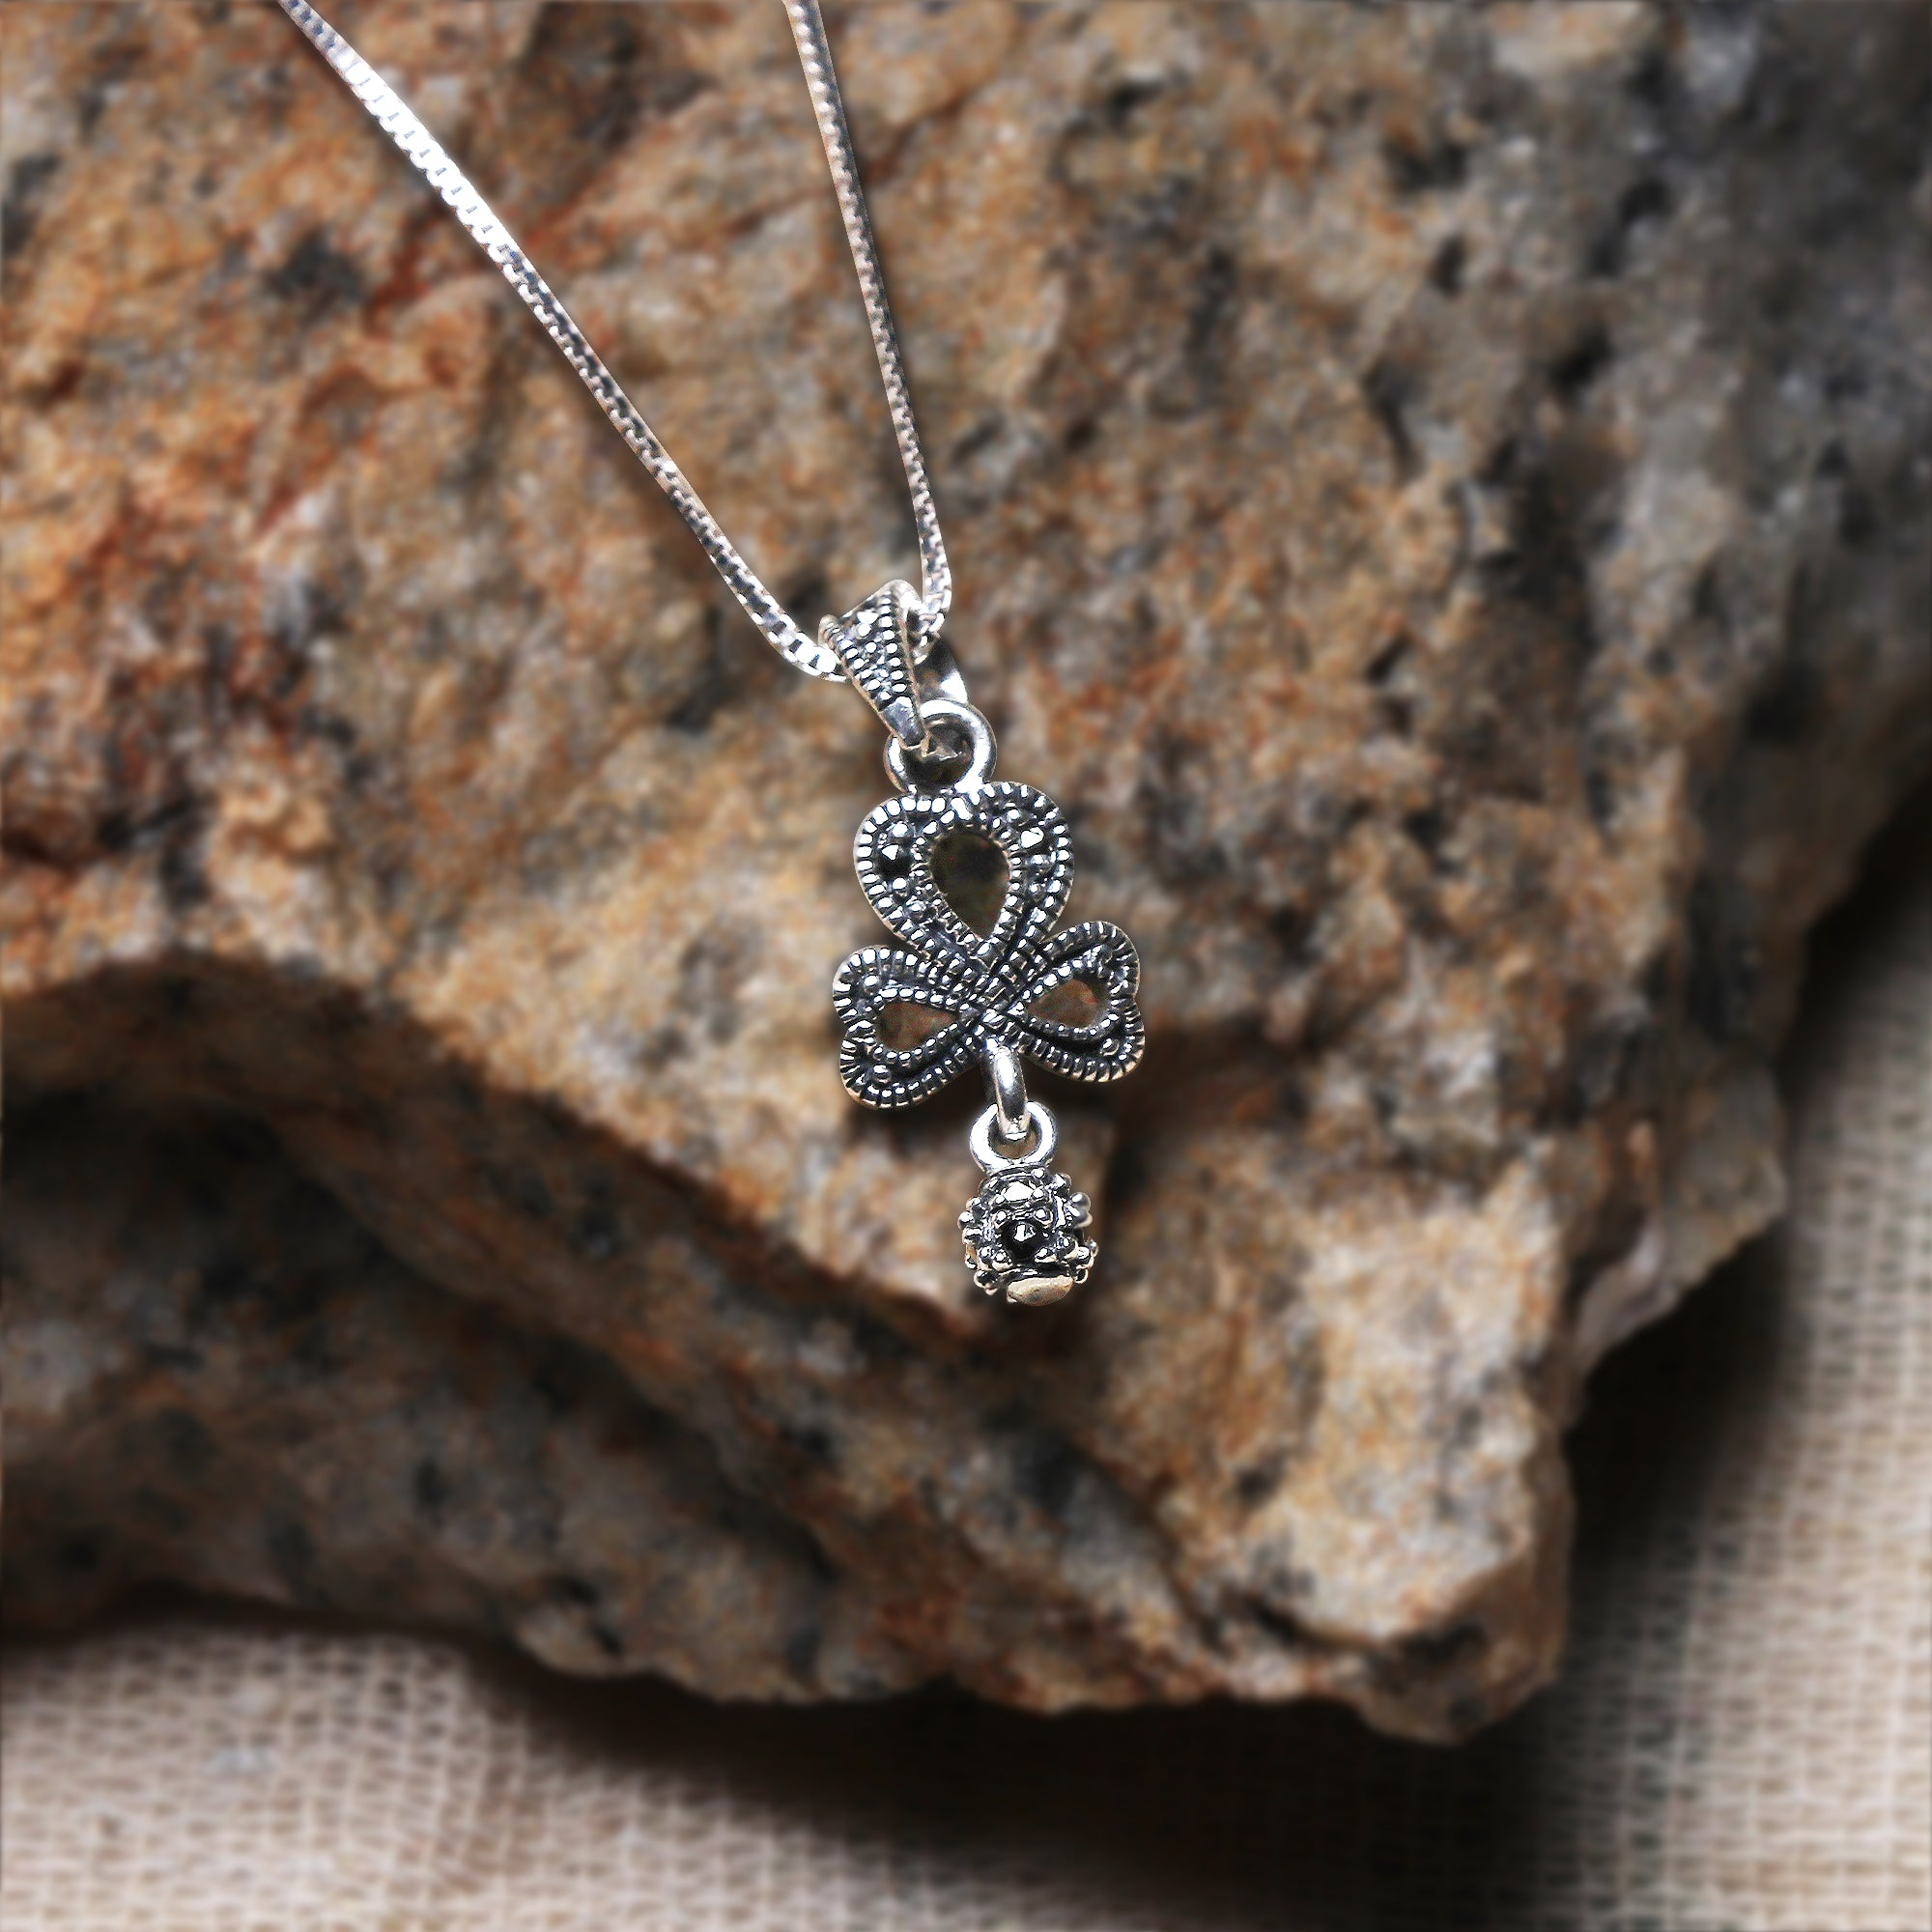 Oxidised Silver Clover Pendant with Box Chain